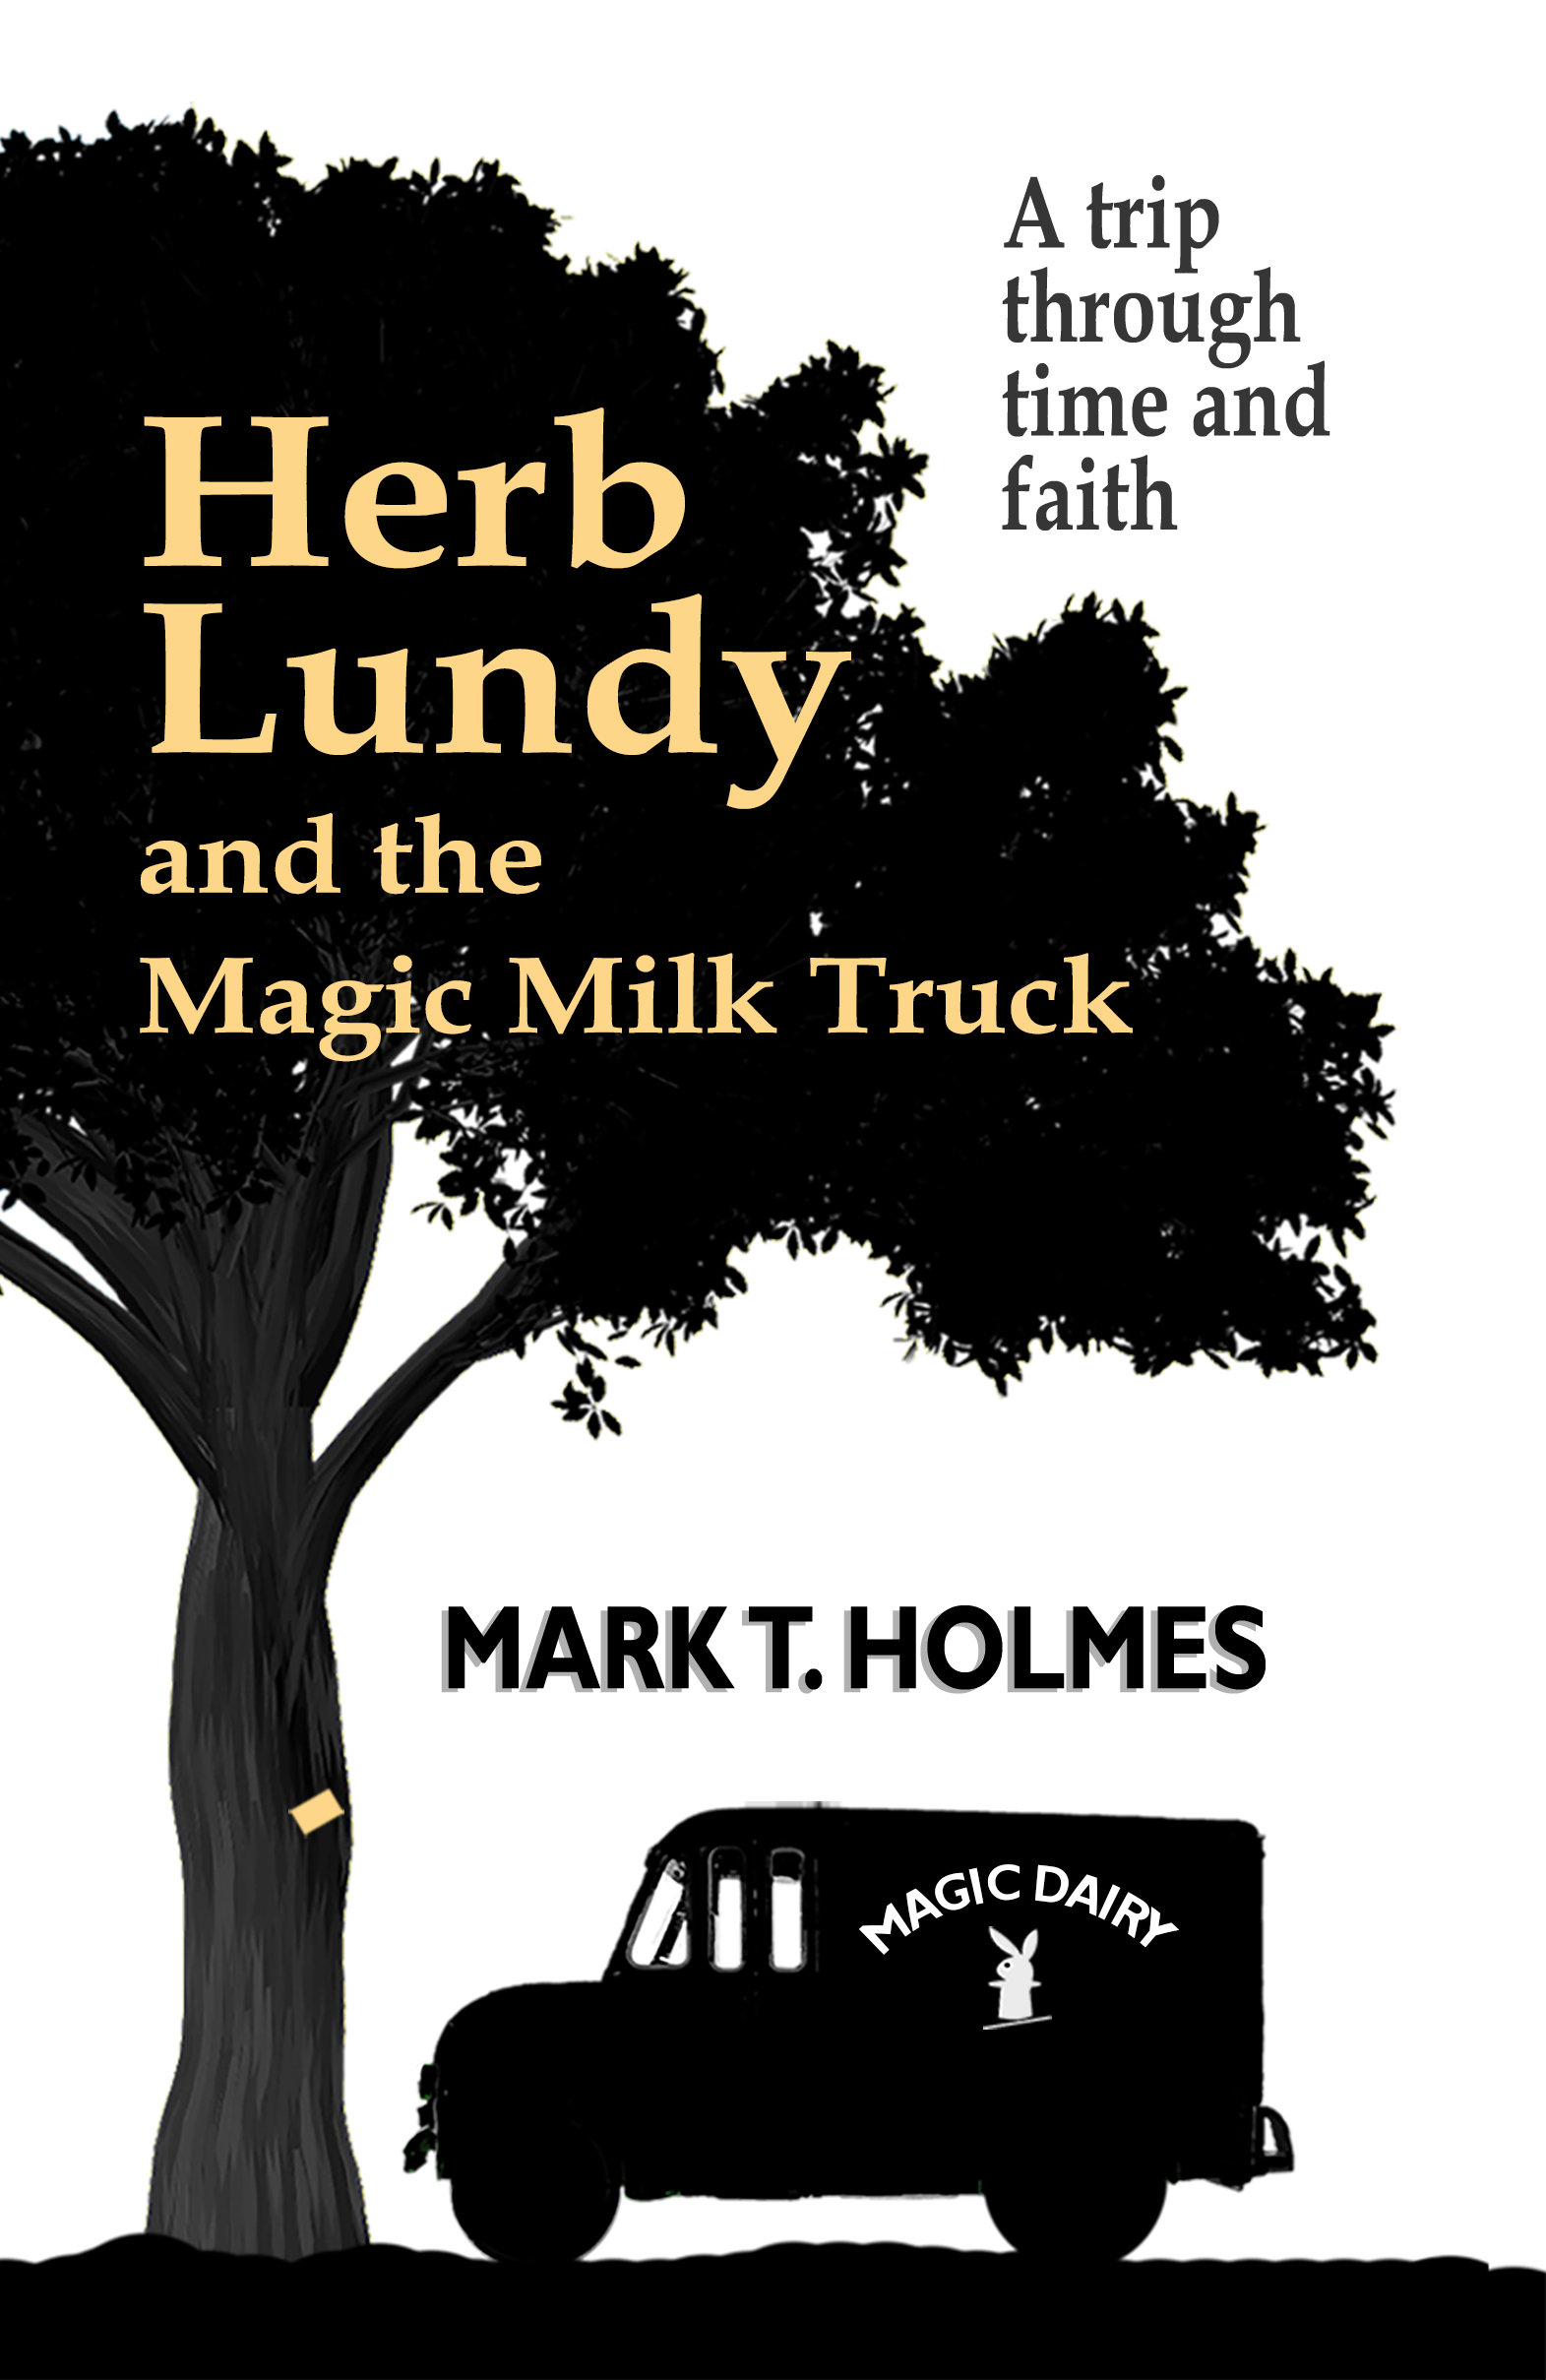 Herb Lundy and the Magic Milk Truck